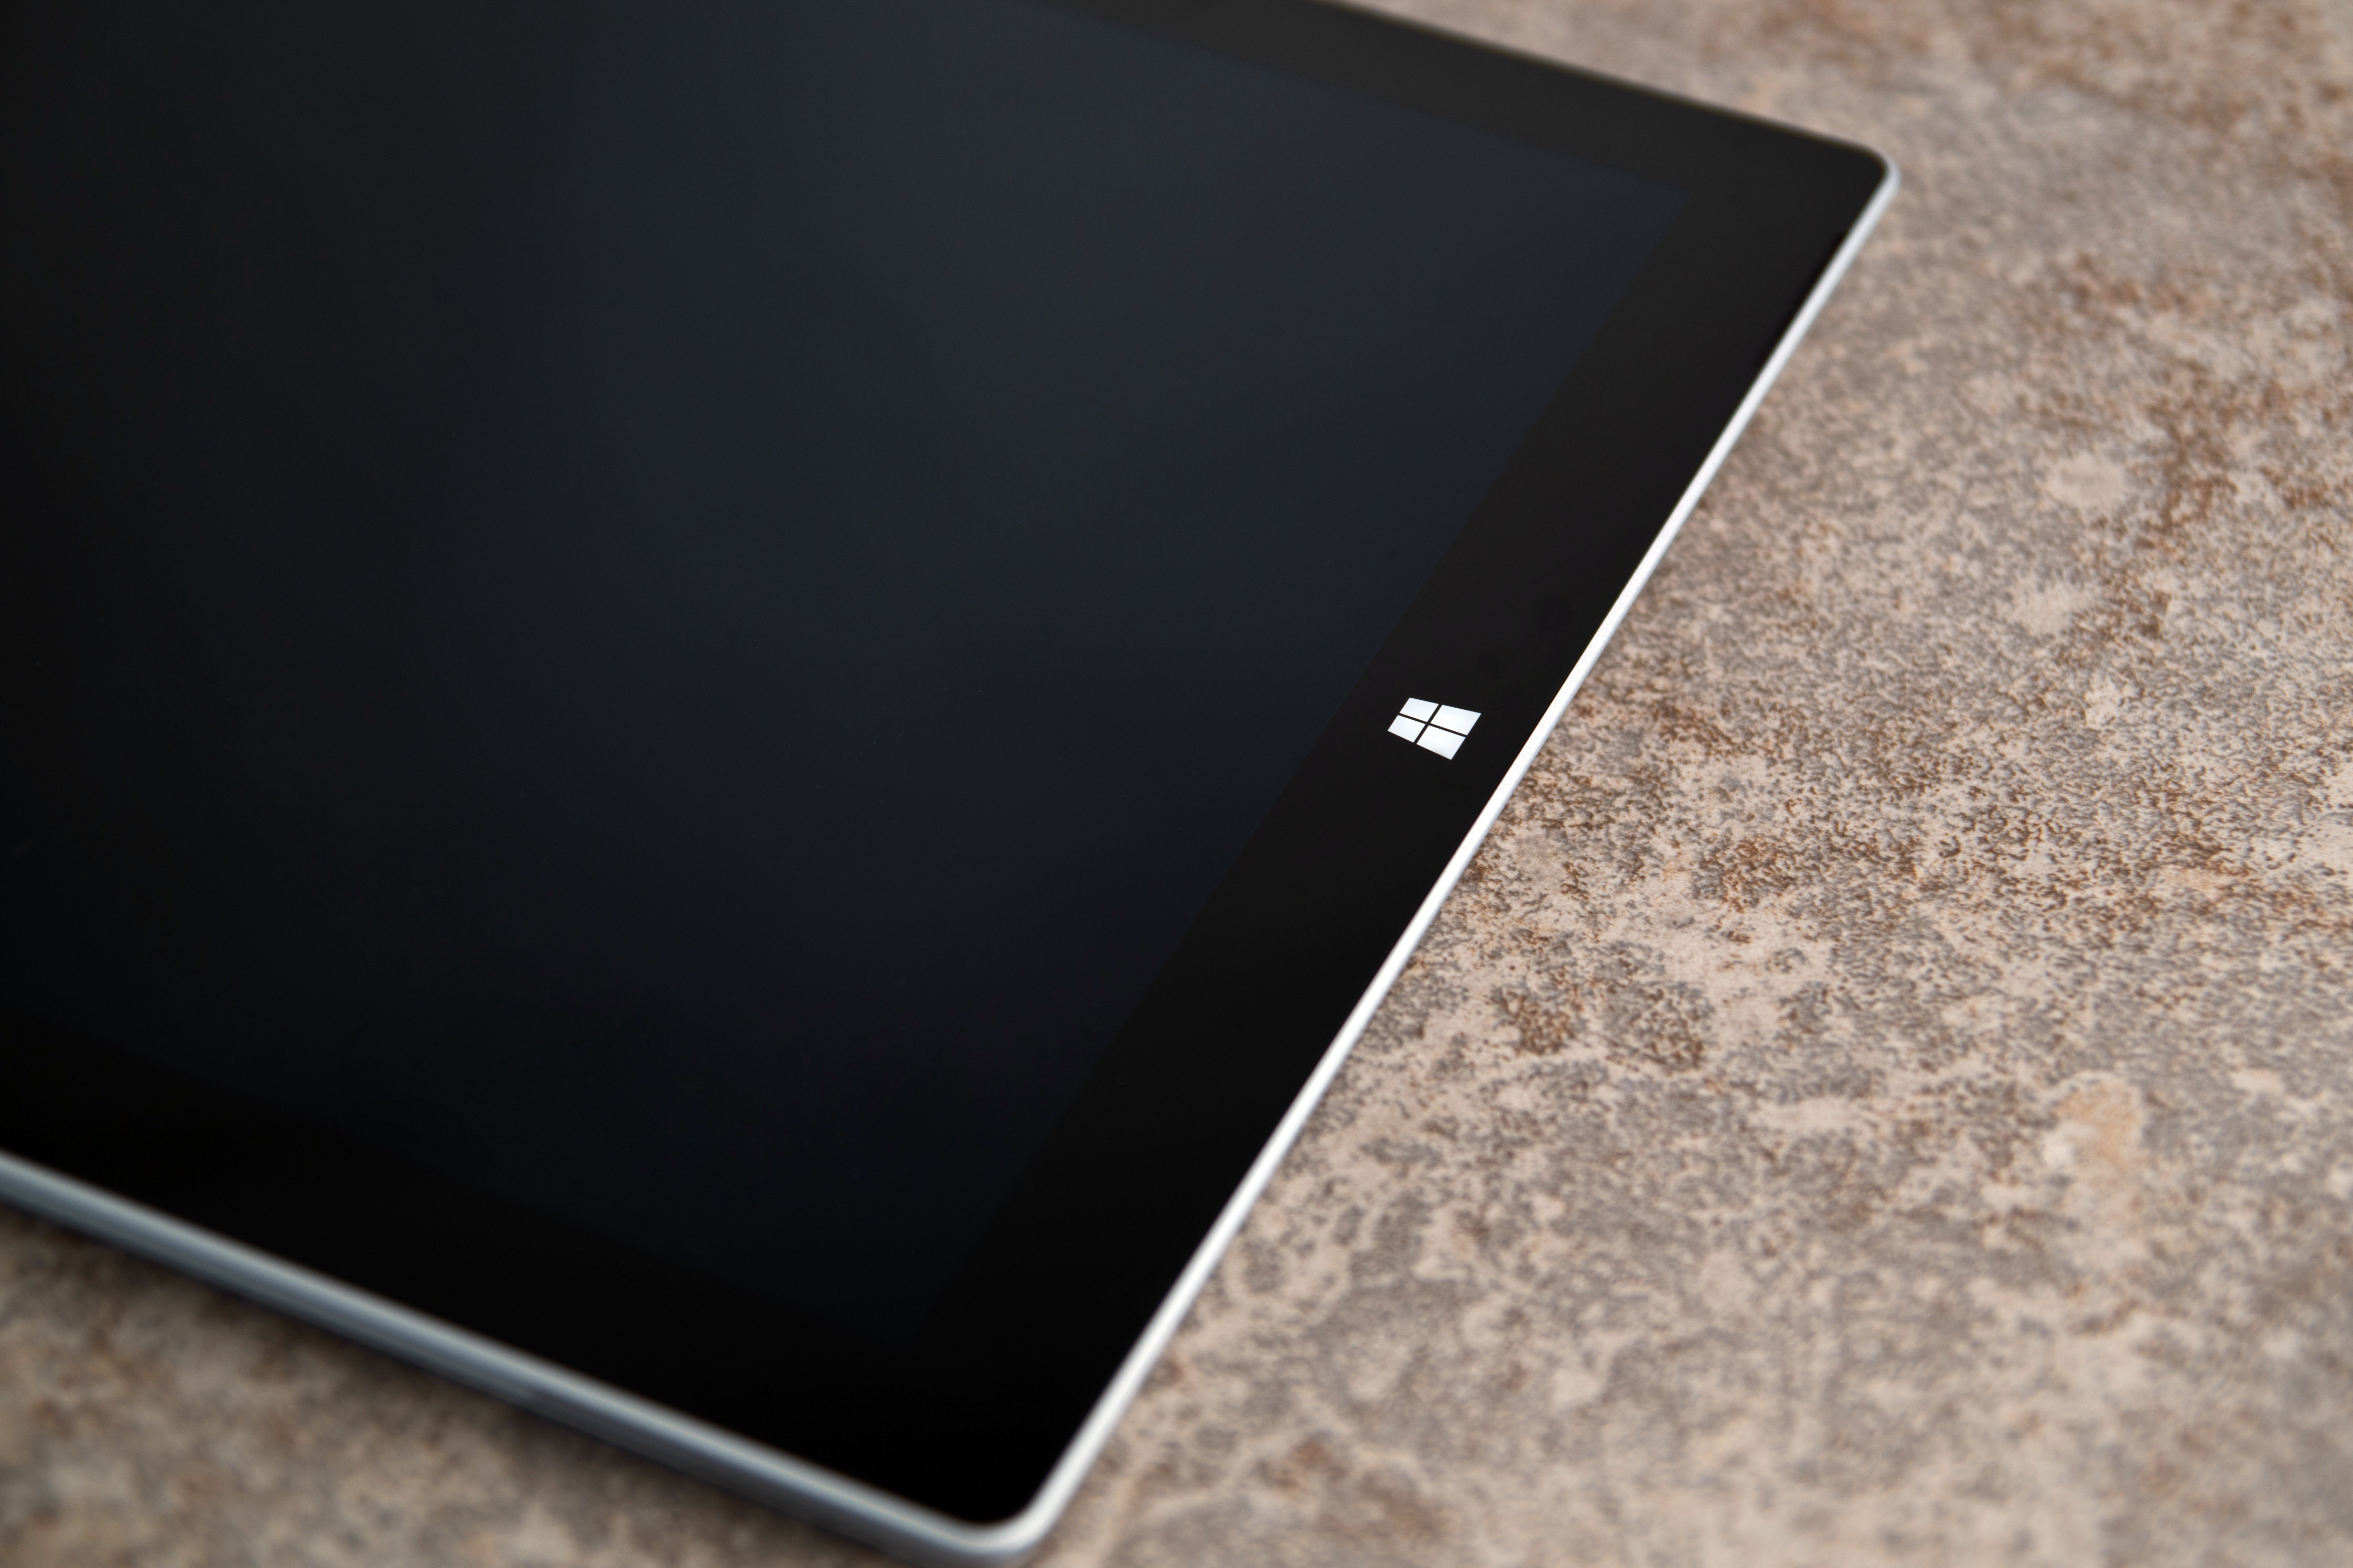 A closer look at the Microsoft Surface Pro 3.